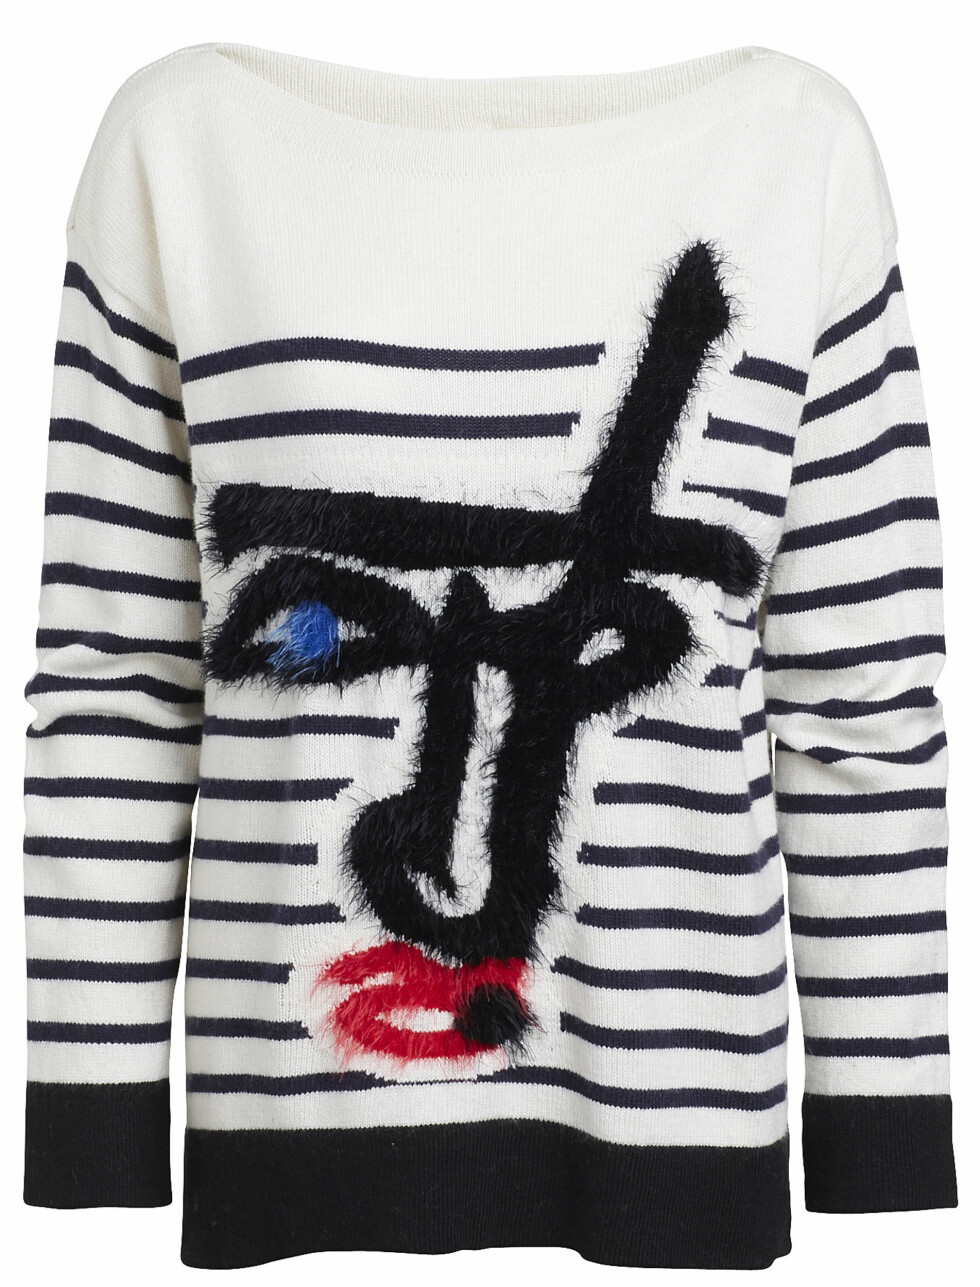 Jean Paul Gaultier for Lindex - Autumn 2014  Sweater / Composition: 40% cotton,30% viscose,25% polyamide,5% wool / Sizes: XS - L  Prices:  SE 599   NO 599   FI 59.95   EE 59.95   LV 59.95   LT 199   CZ 1499   SK 59.95   PL 229   RU 2999   BA 119.95   IS 11995   HR 459   Sales start: 2014-10-08